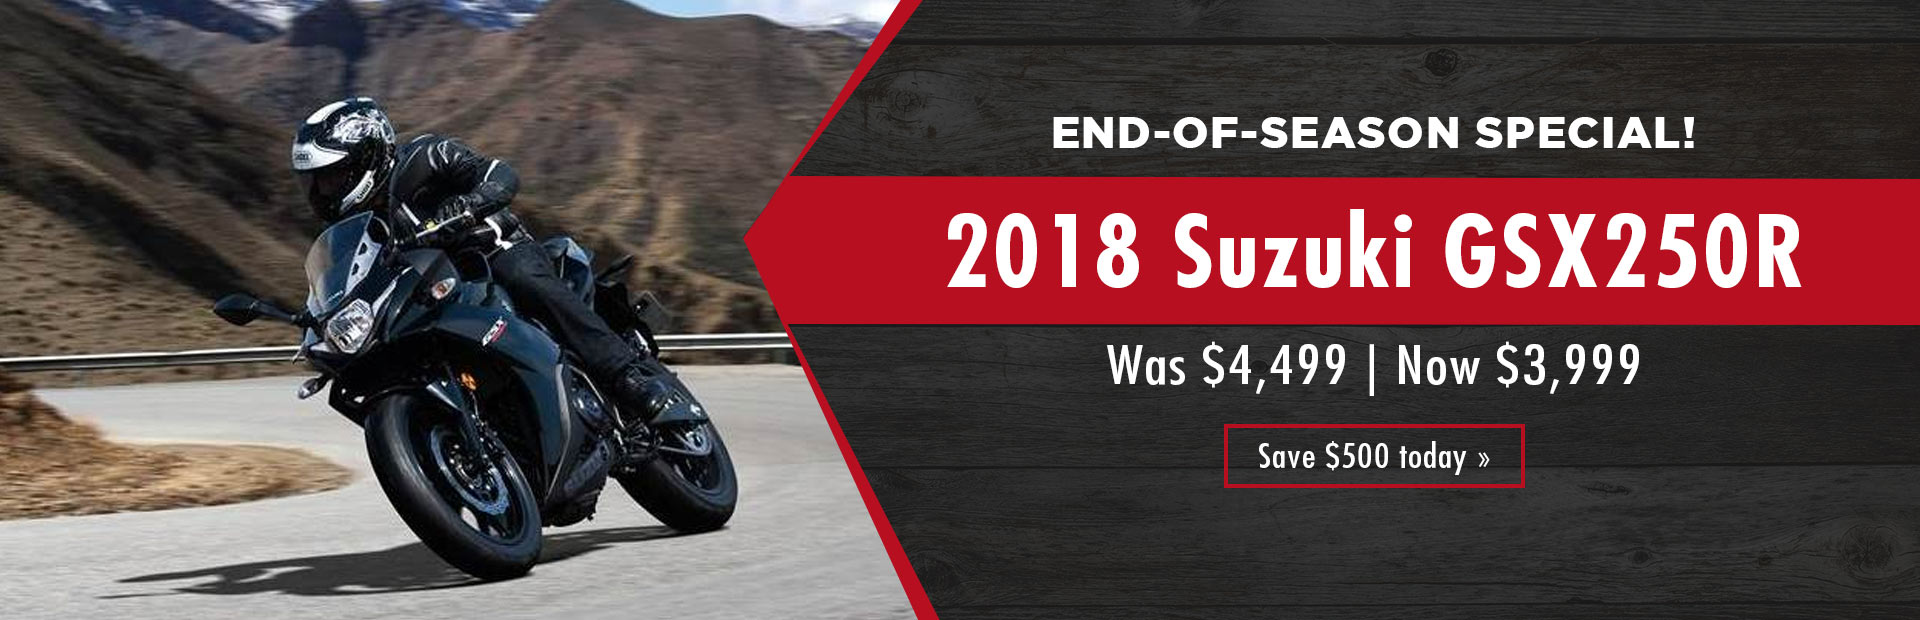 End-of-Season Special: Get the 2018 Suzuki GSX250R for just $3,999!